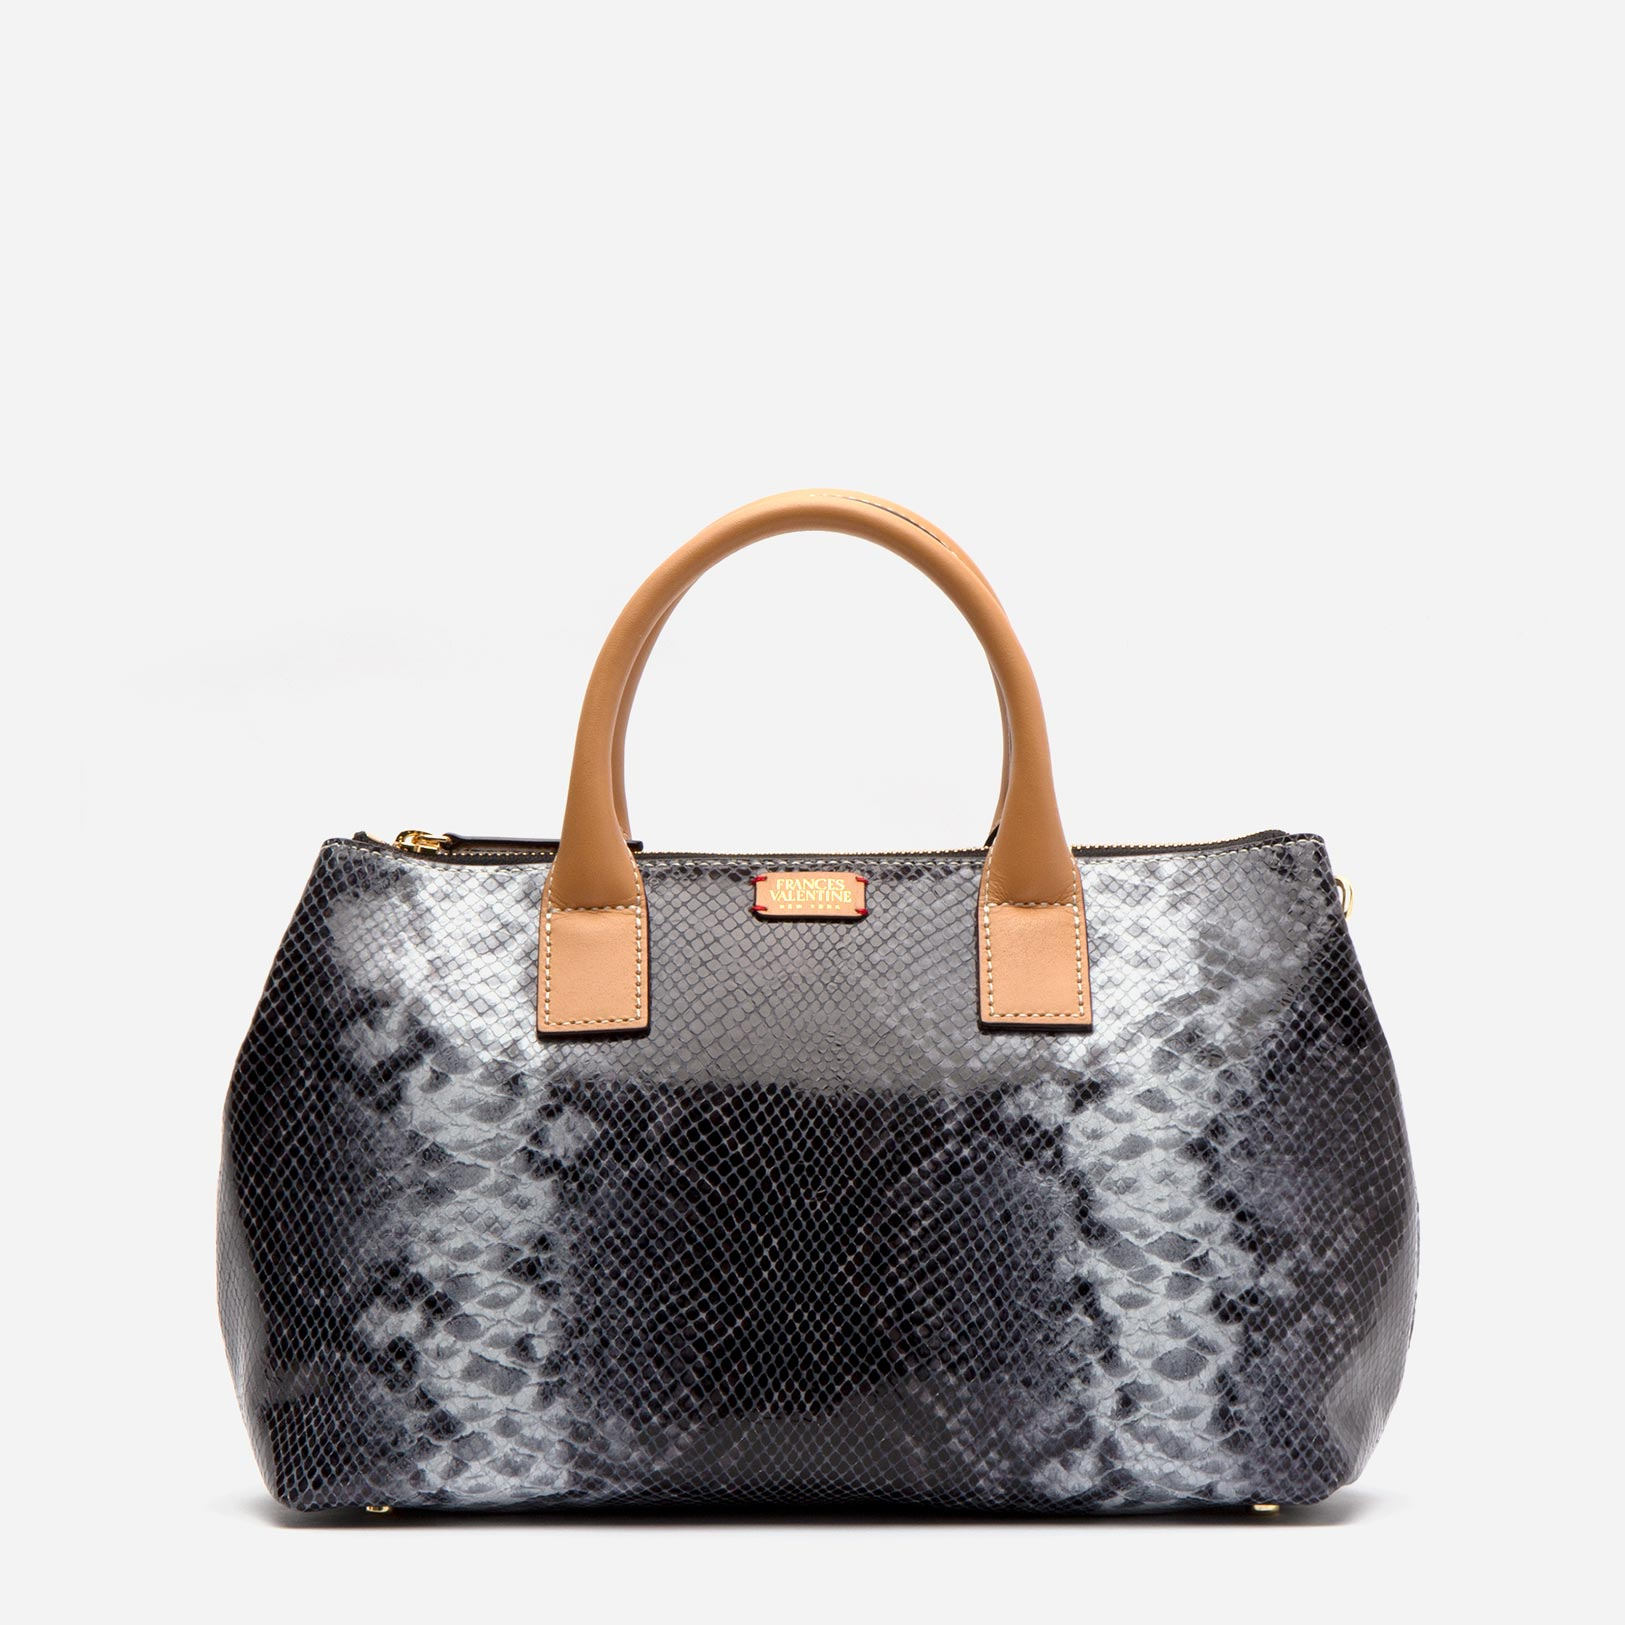 Tilly Tote Stripe Snake Leather Roccia - Frances Valentine